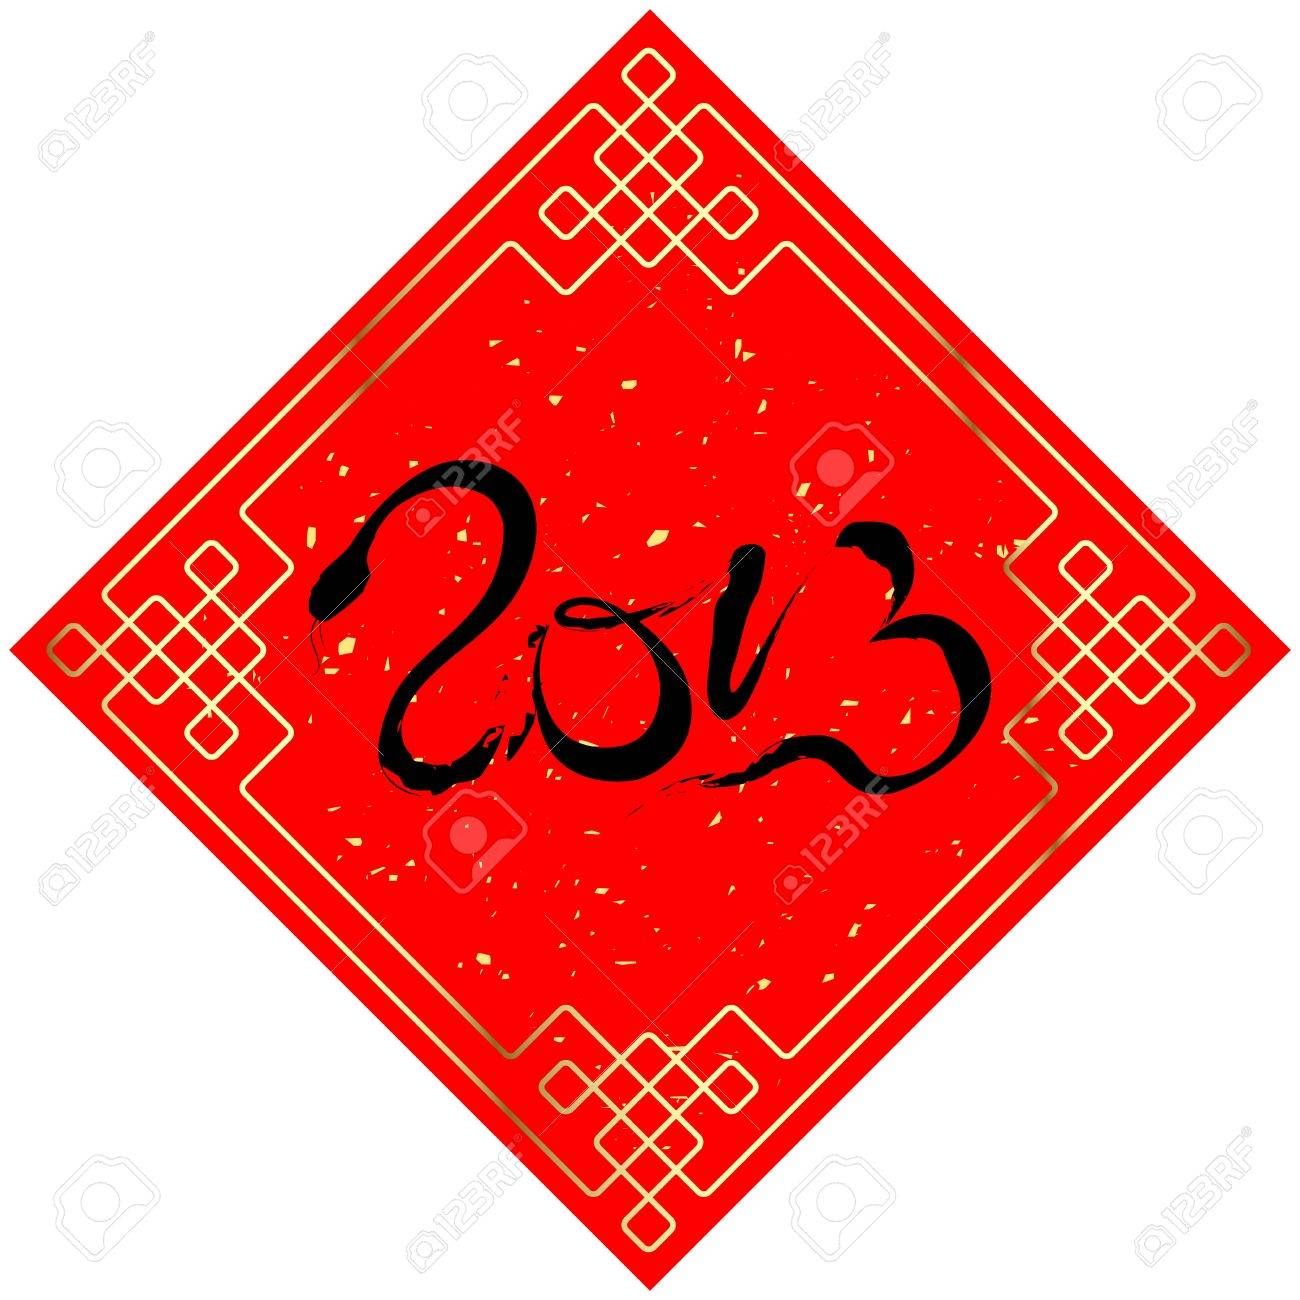 Chinese New Year 2013 Year of Snake Stock Vector - 17021182